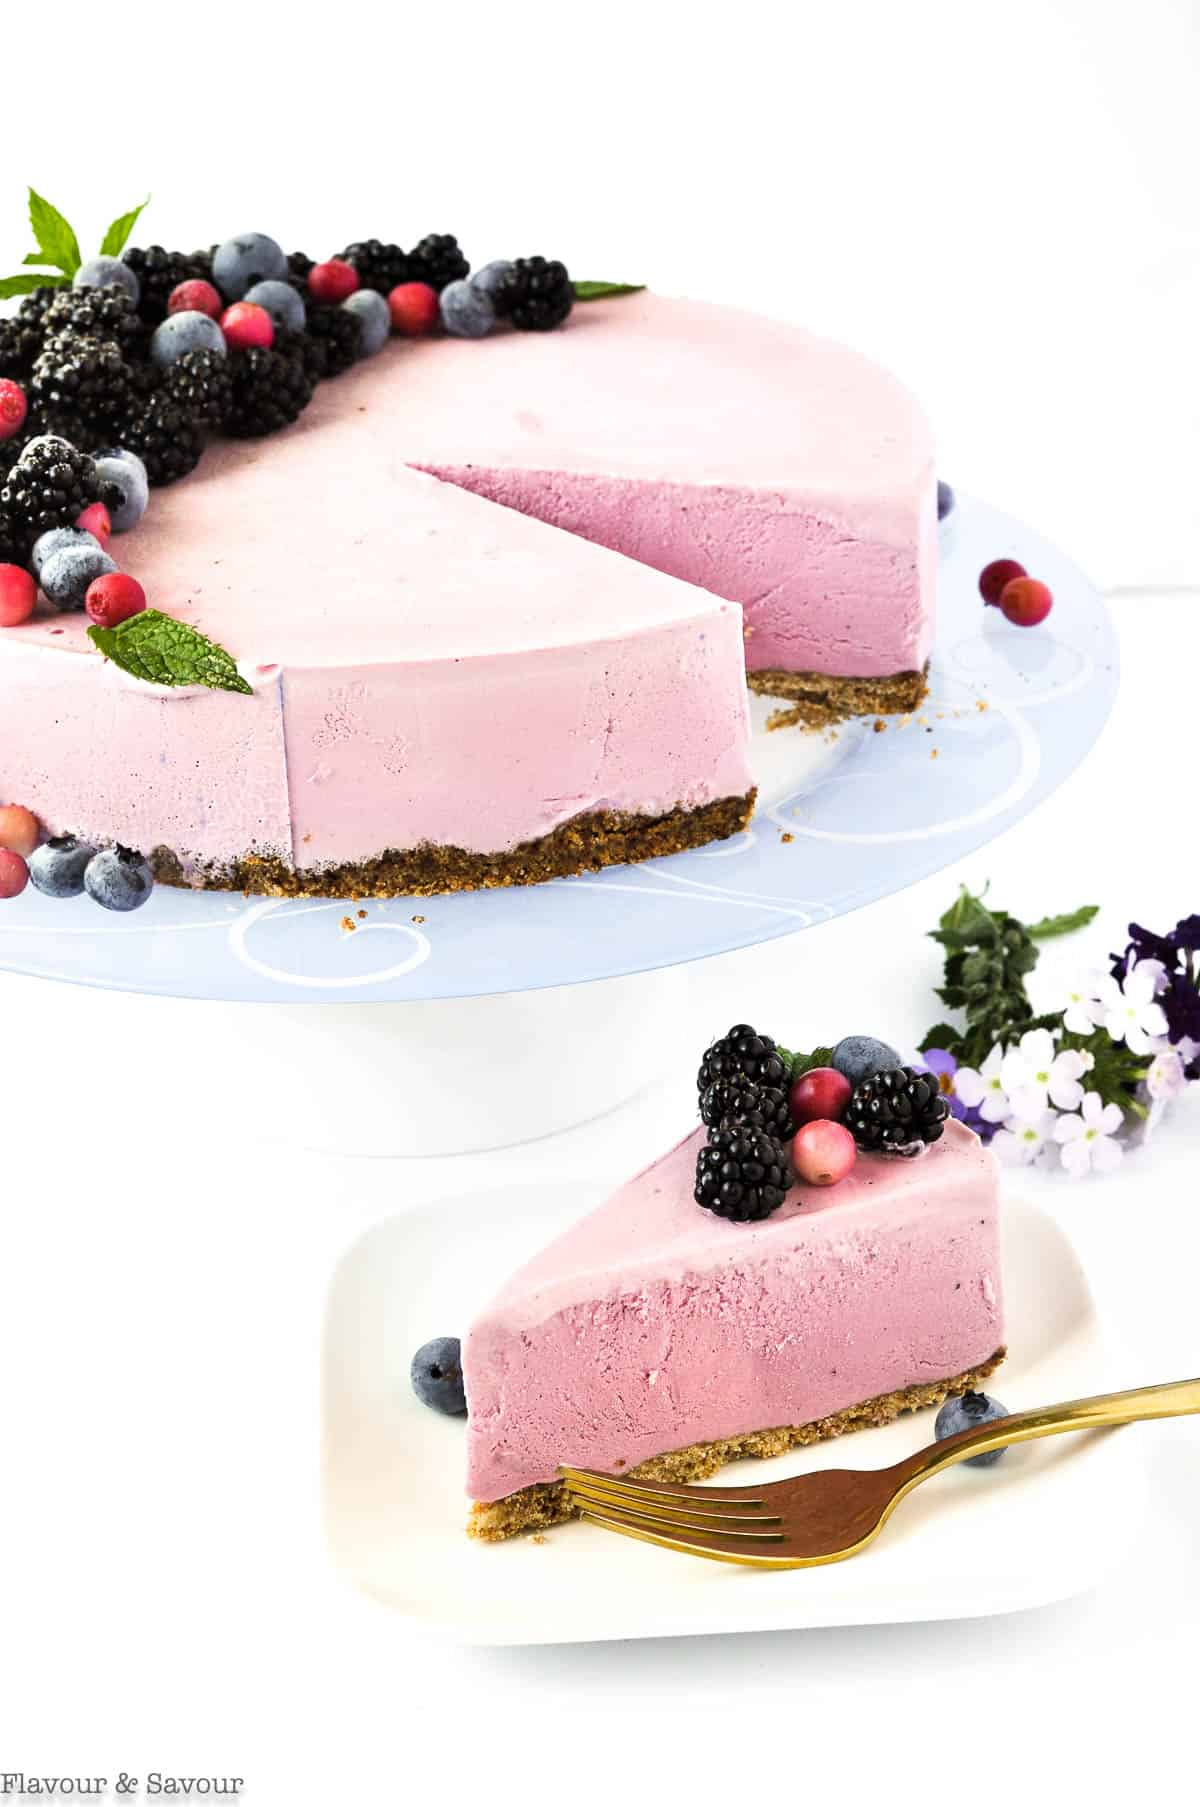 Blackberry Ice Cream Cheesecakeon a pedestal stand with a slice on a plate with a fork